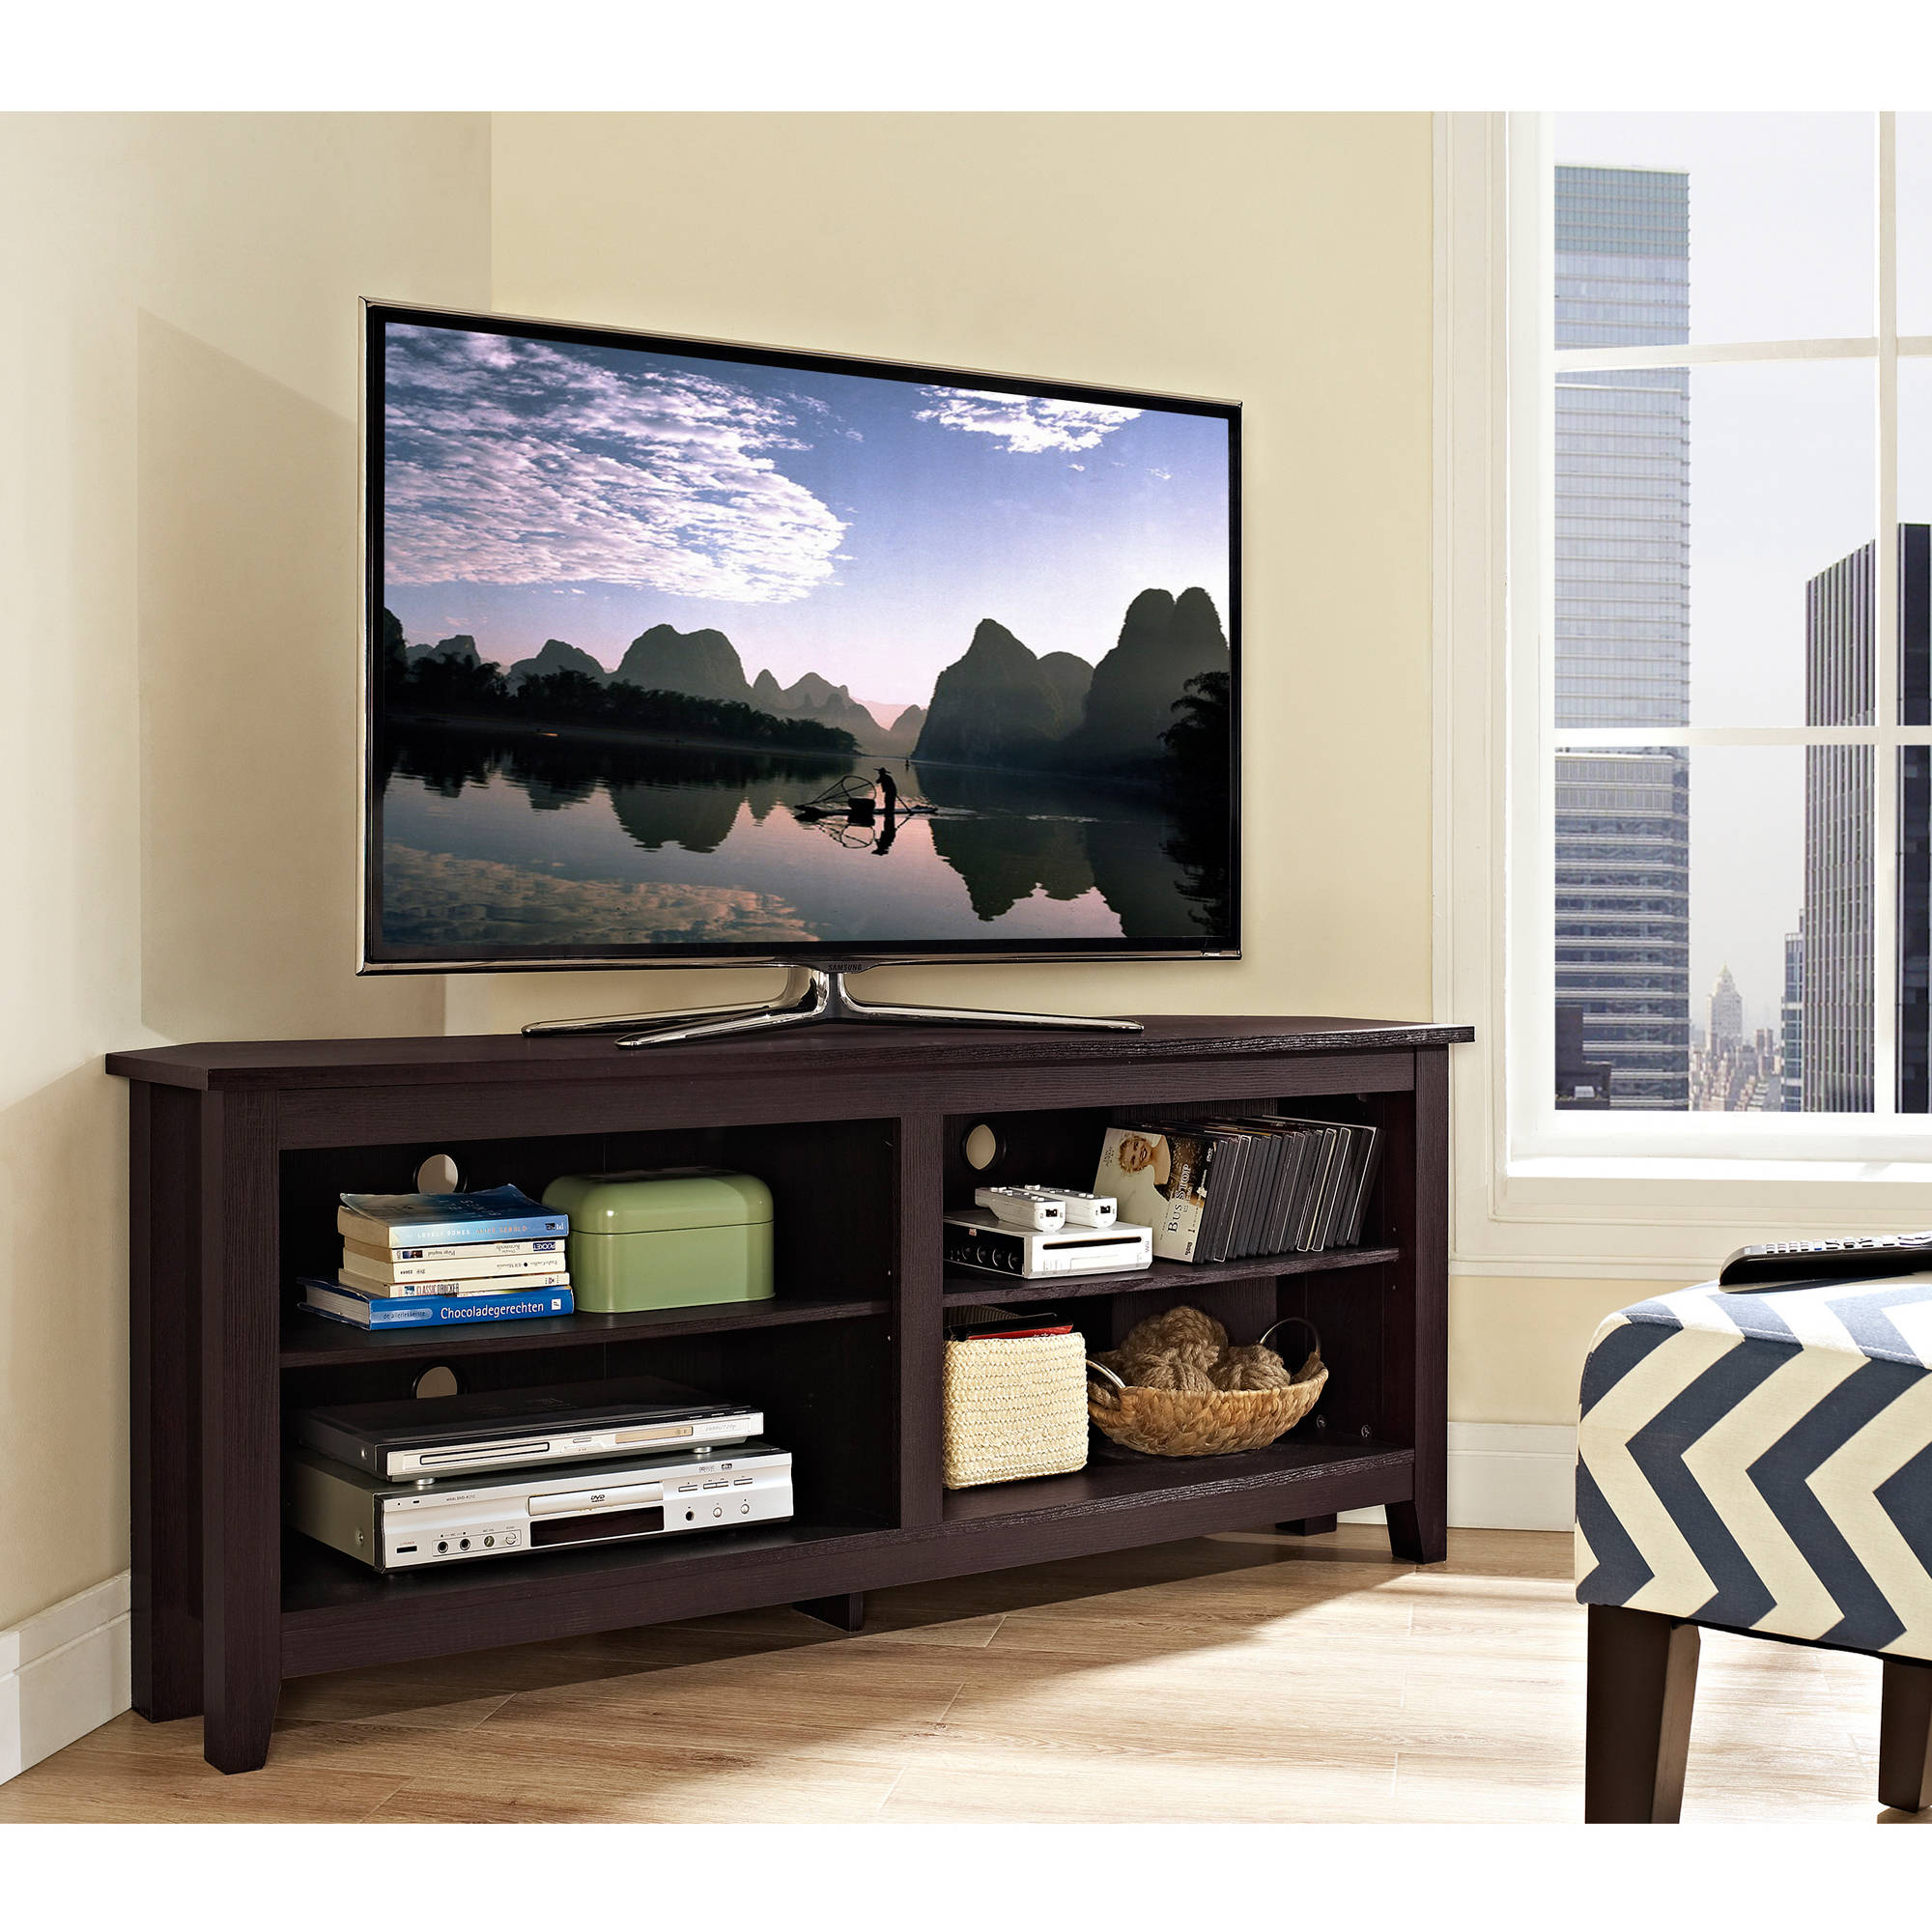 Walker Edison Corner Tv Stand Console For S Up To 64 Espresso